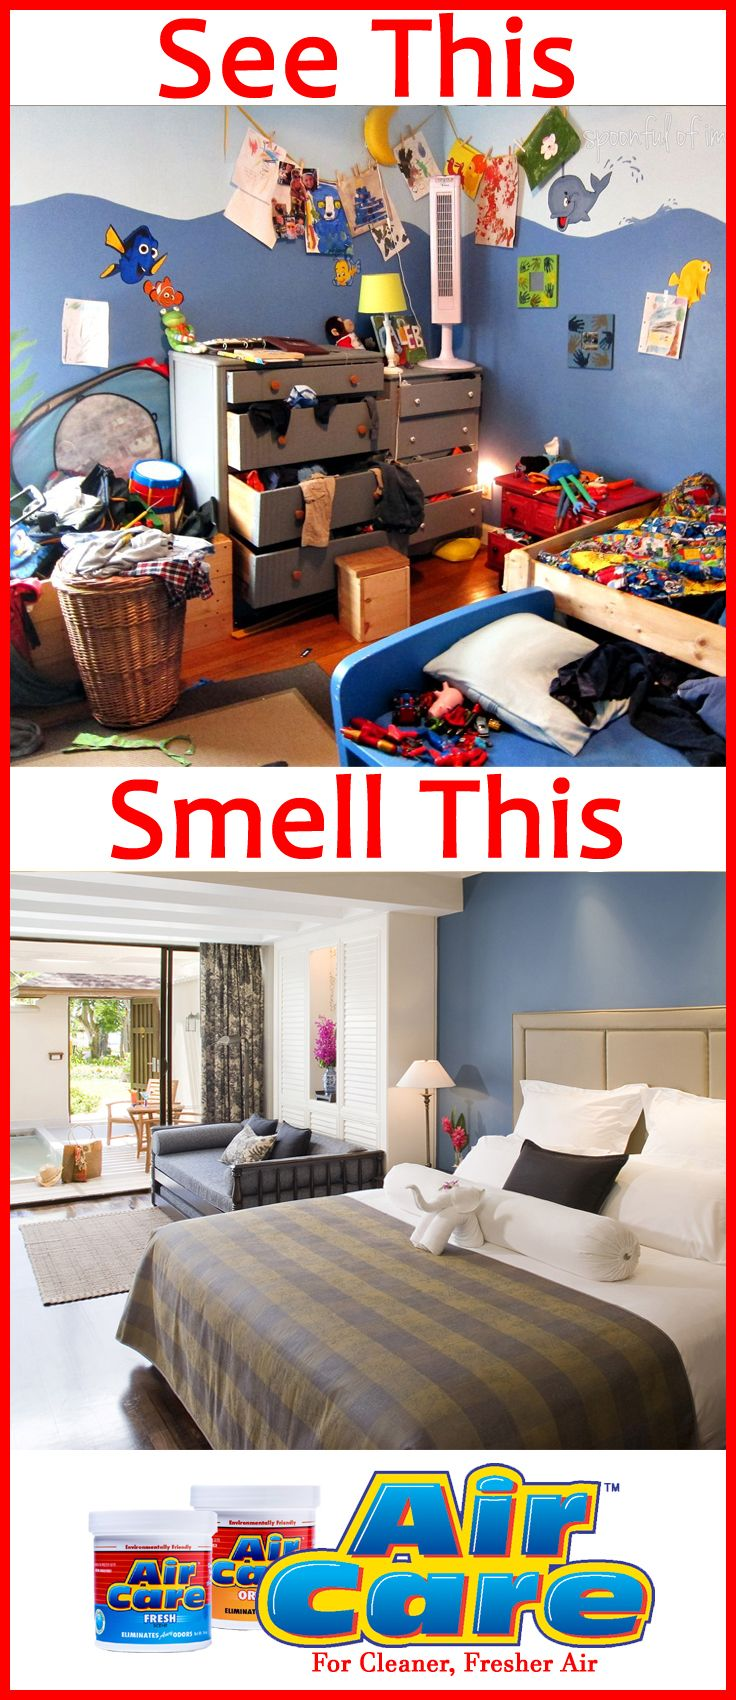 Smell fresher, cleaner air not a mess! Place an AirCare 1